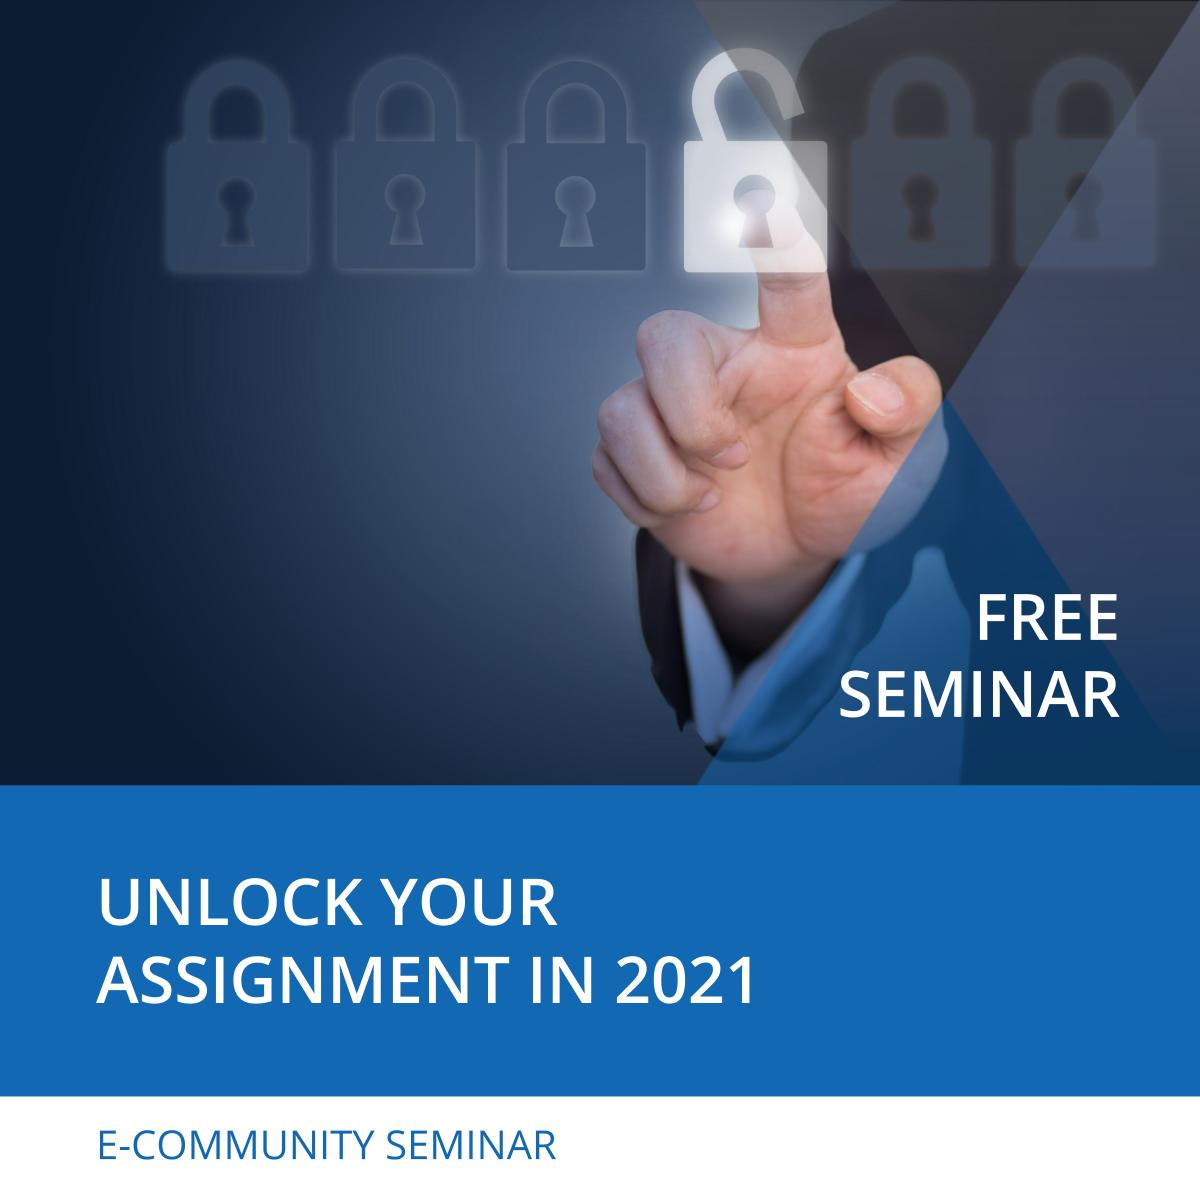 unlock your assignment in 2021 - Nehemiah E-Community